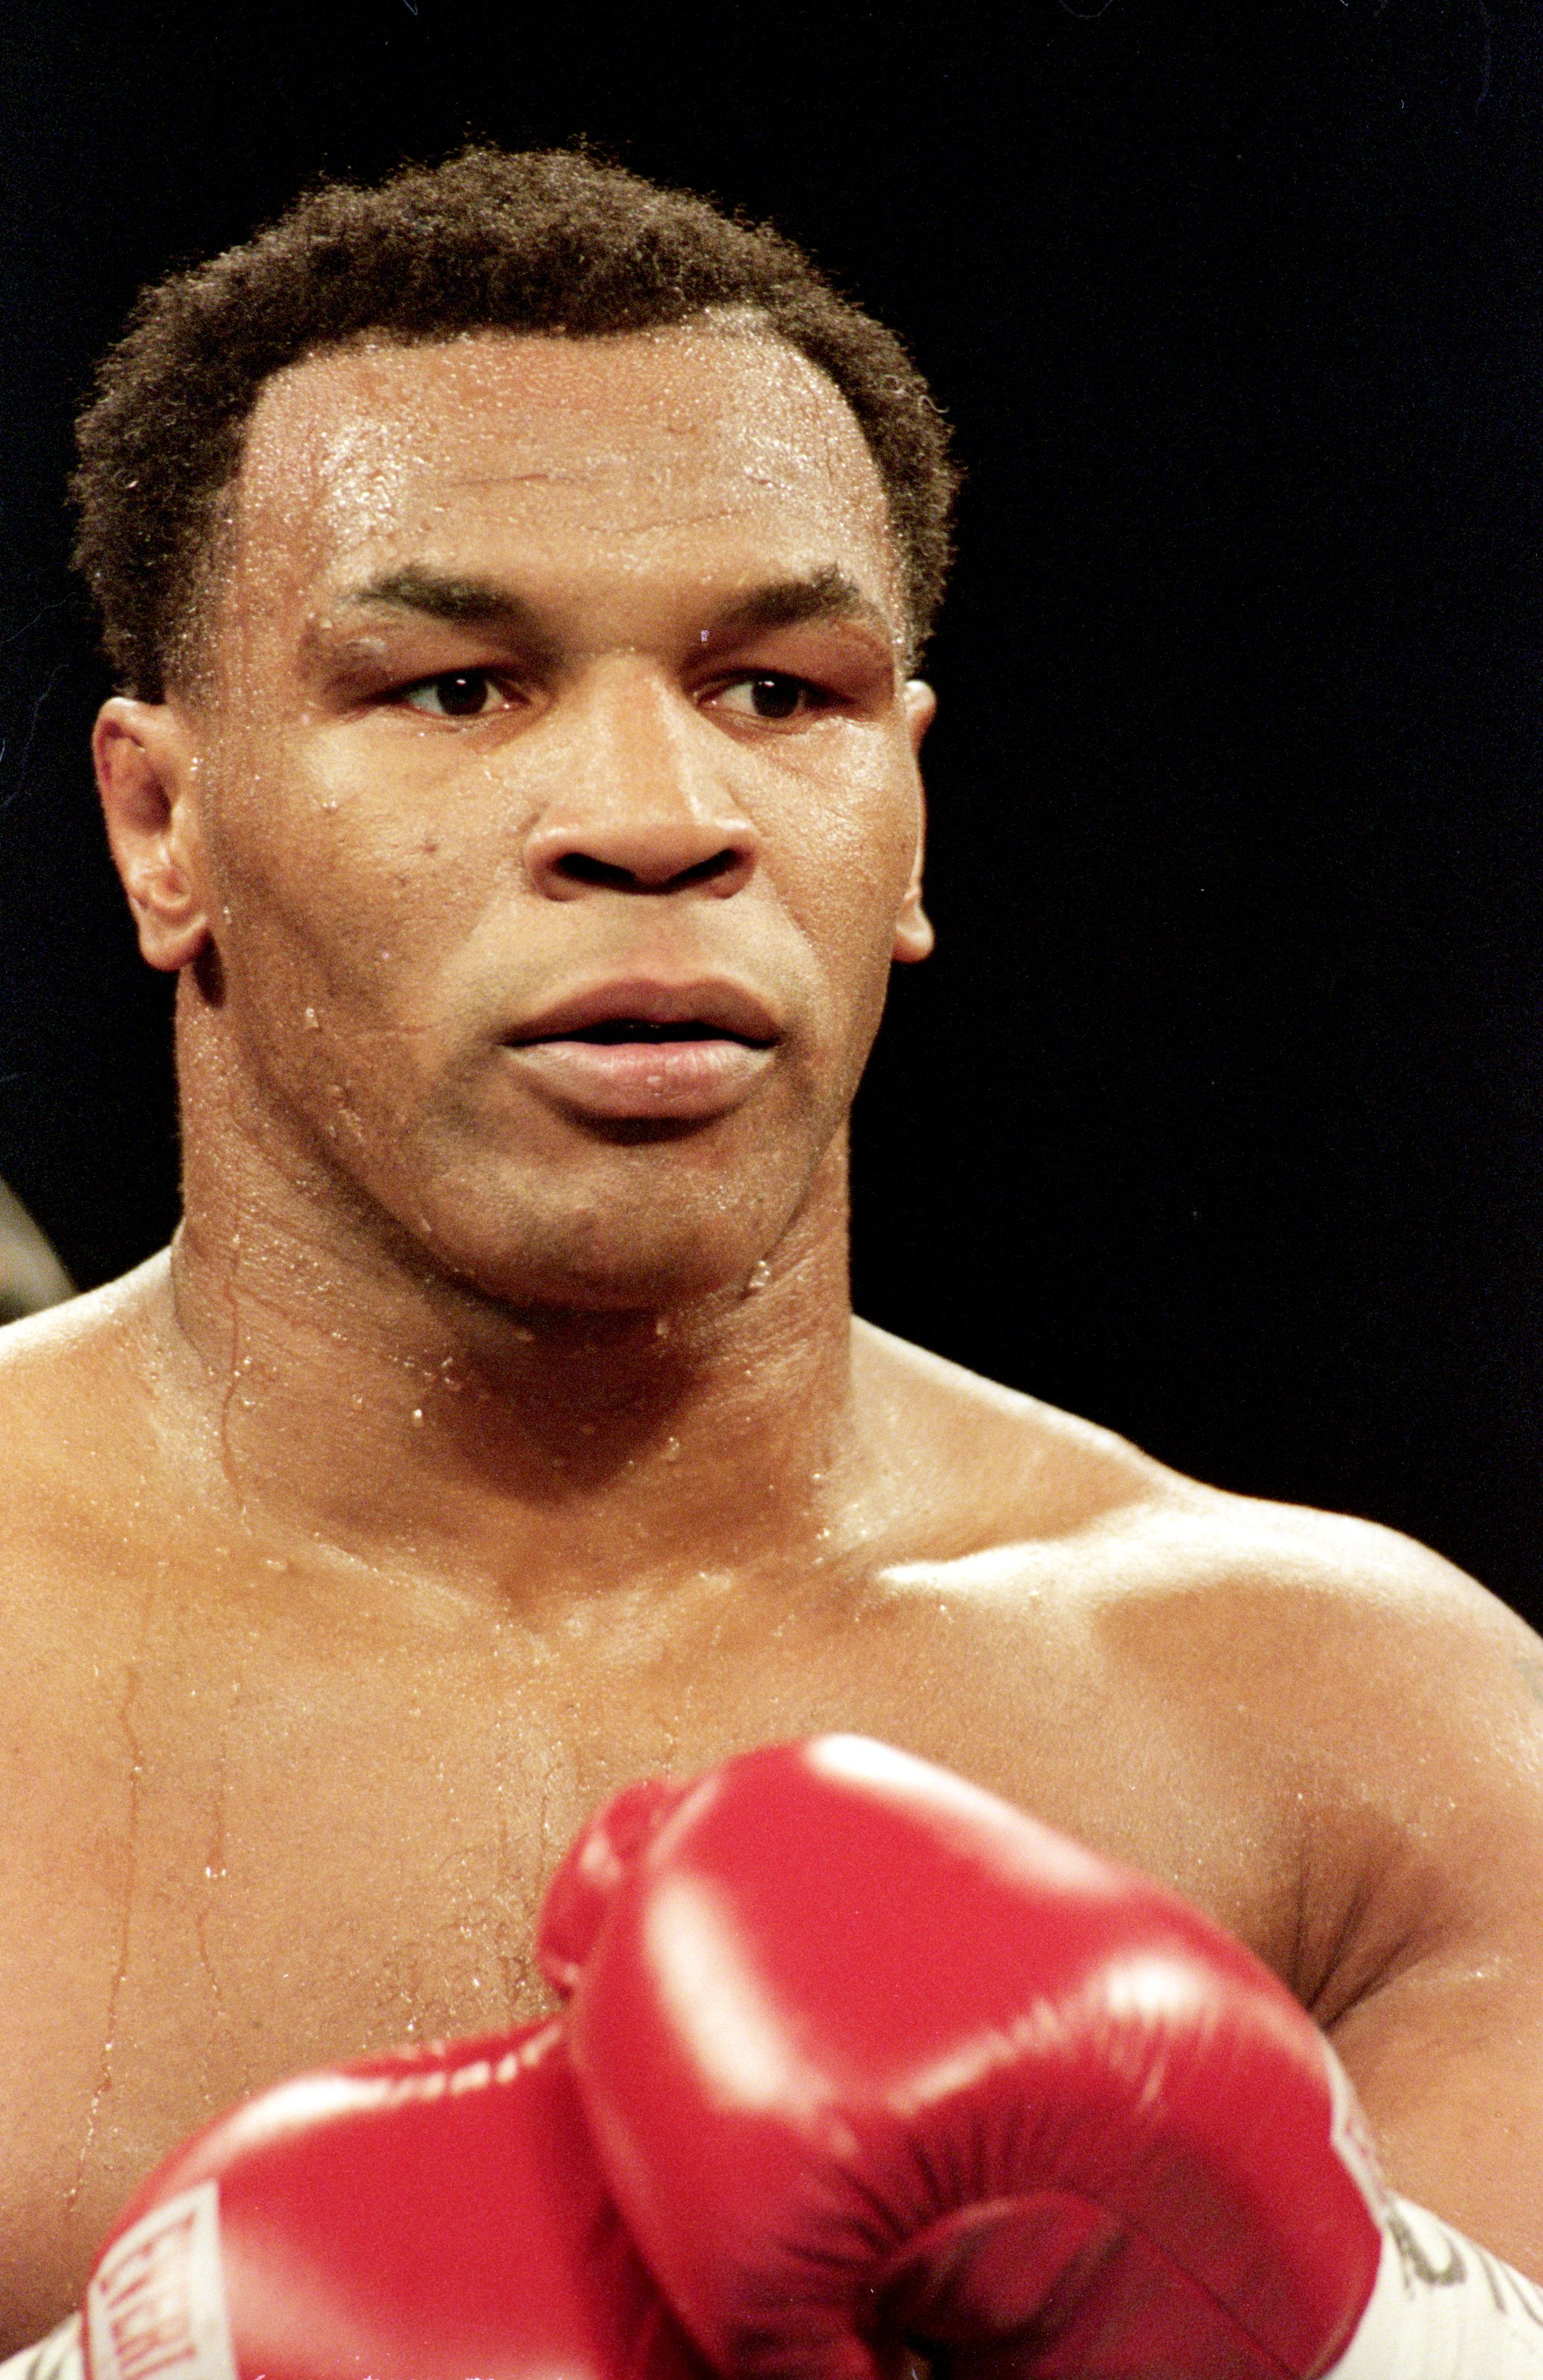 23 Oct 1999: Mike Tyson gets ready during a fight against Orlin Norris at the MGM Grand Hotel in Las Vegas, Nevada. The fight ended in a no contest.